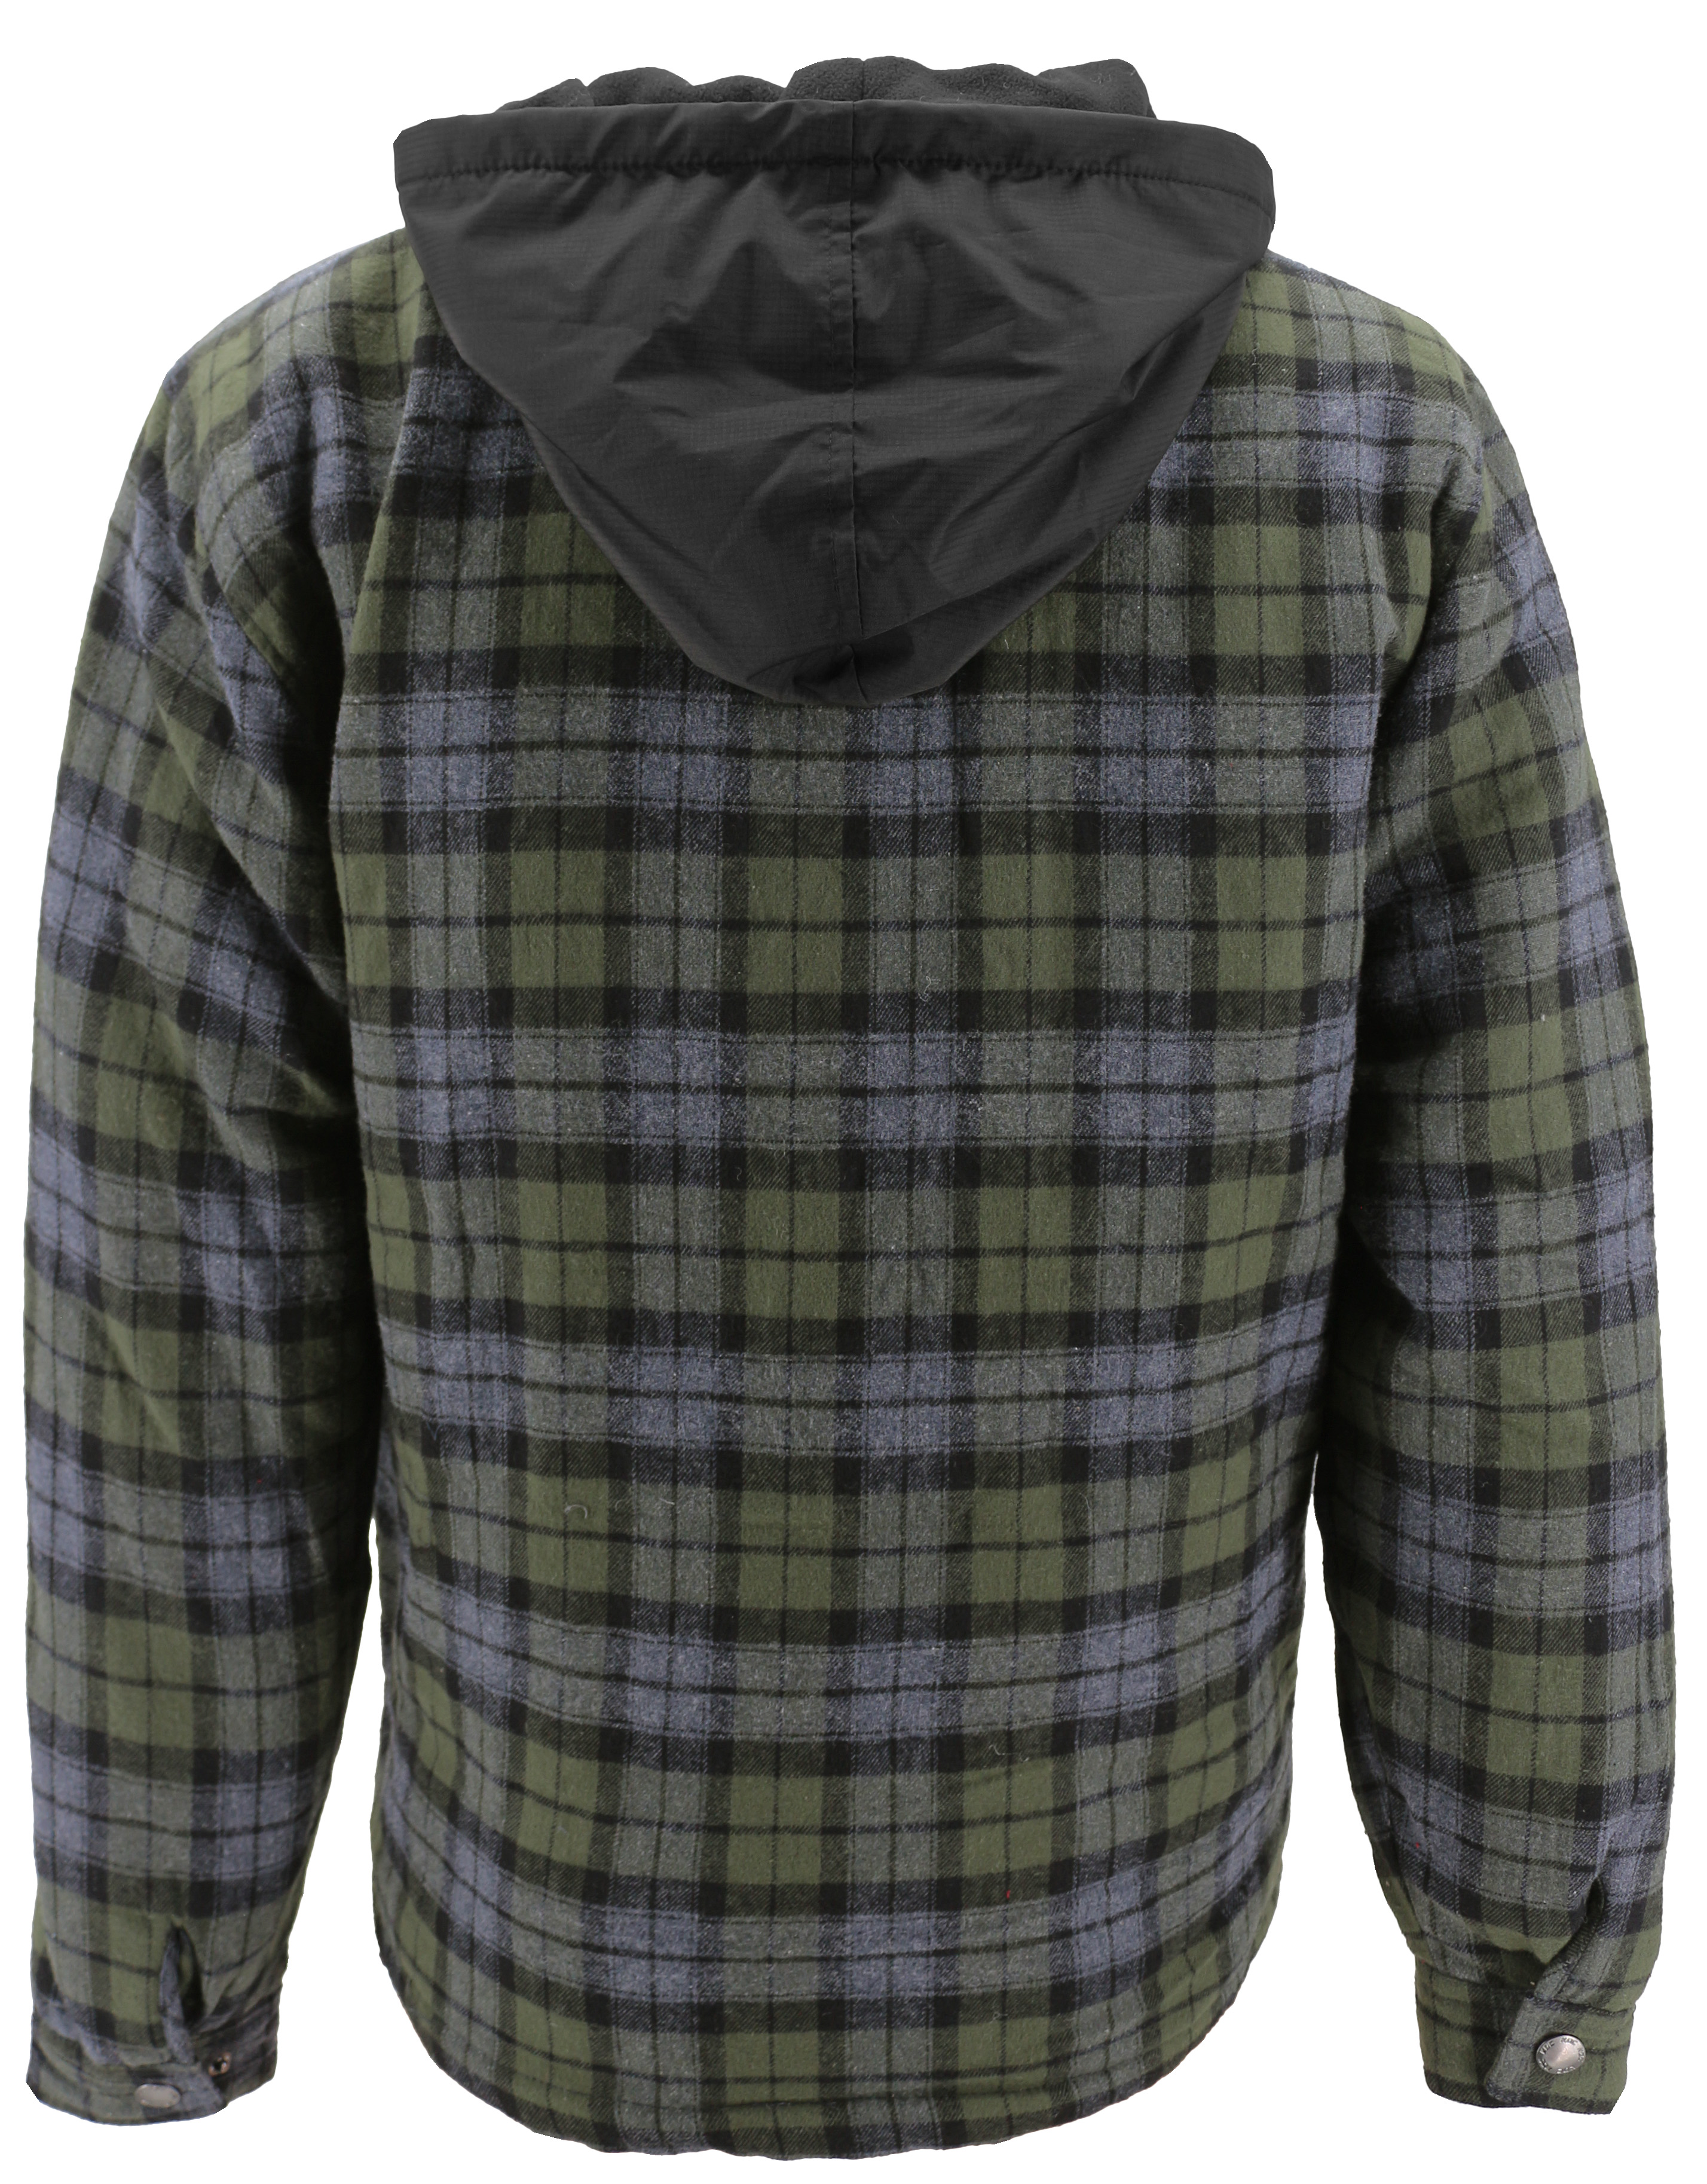 vkwear-Men-039-s-Quilted-Lined-Cotton-Plaid-Flannel-Layered-Zip-Up-Hoodie-Jacket thumbnail 7